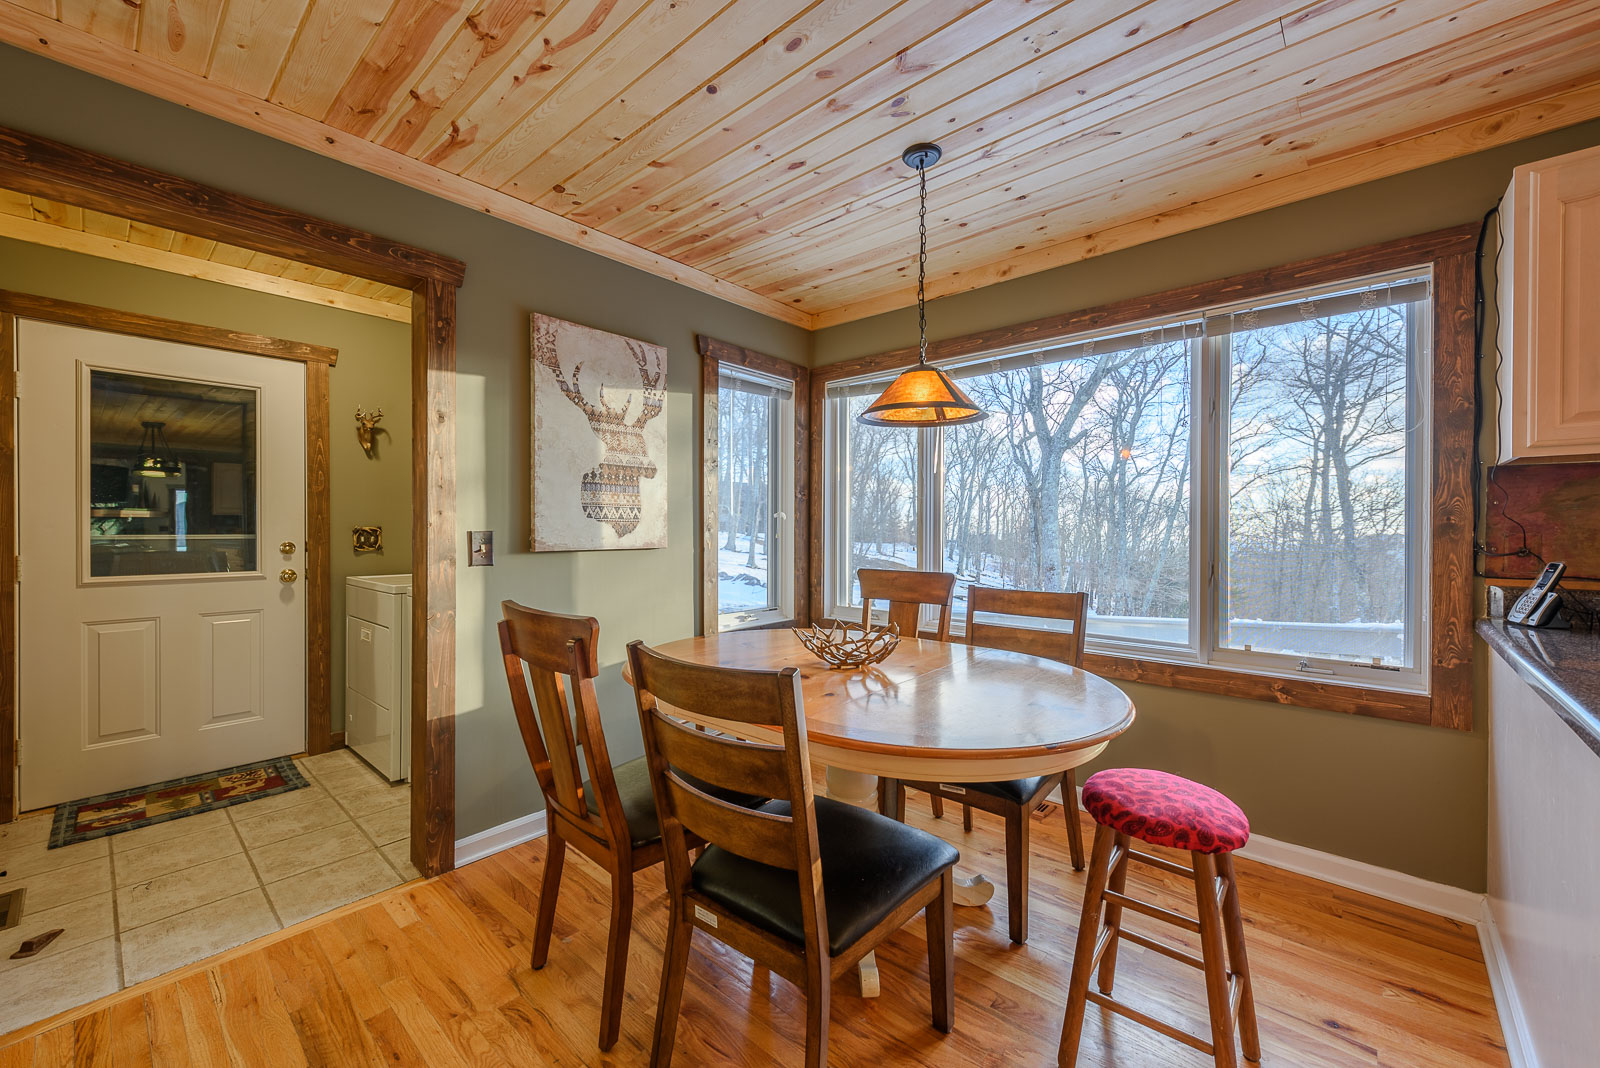 Breakfast Area in Kitchen offers additional Dining